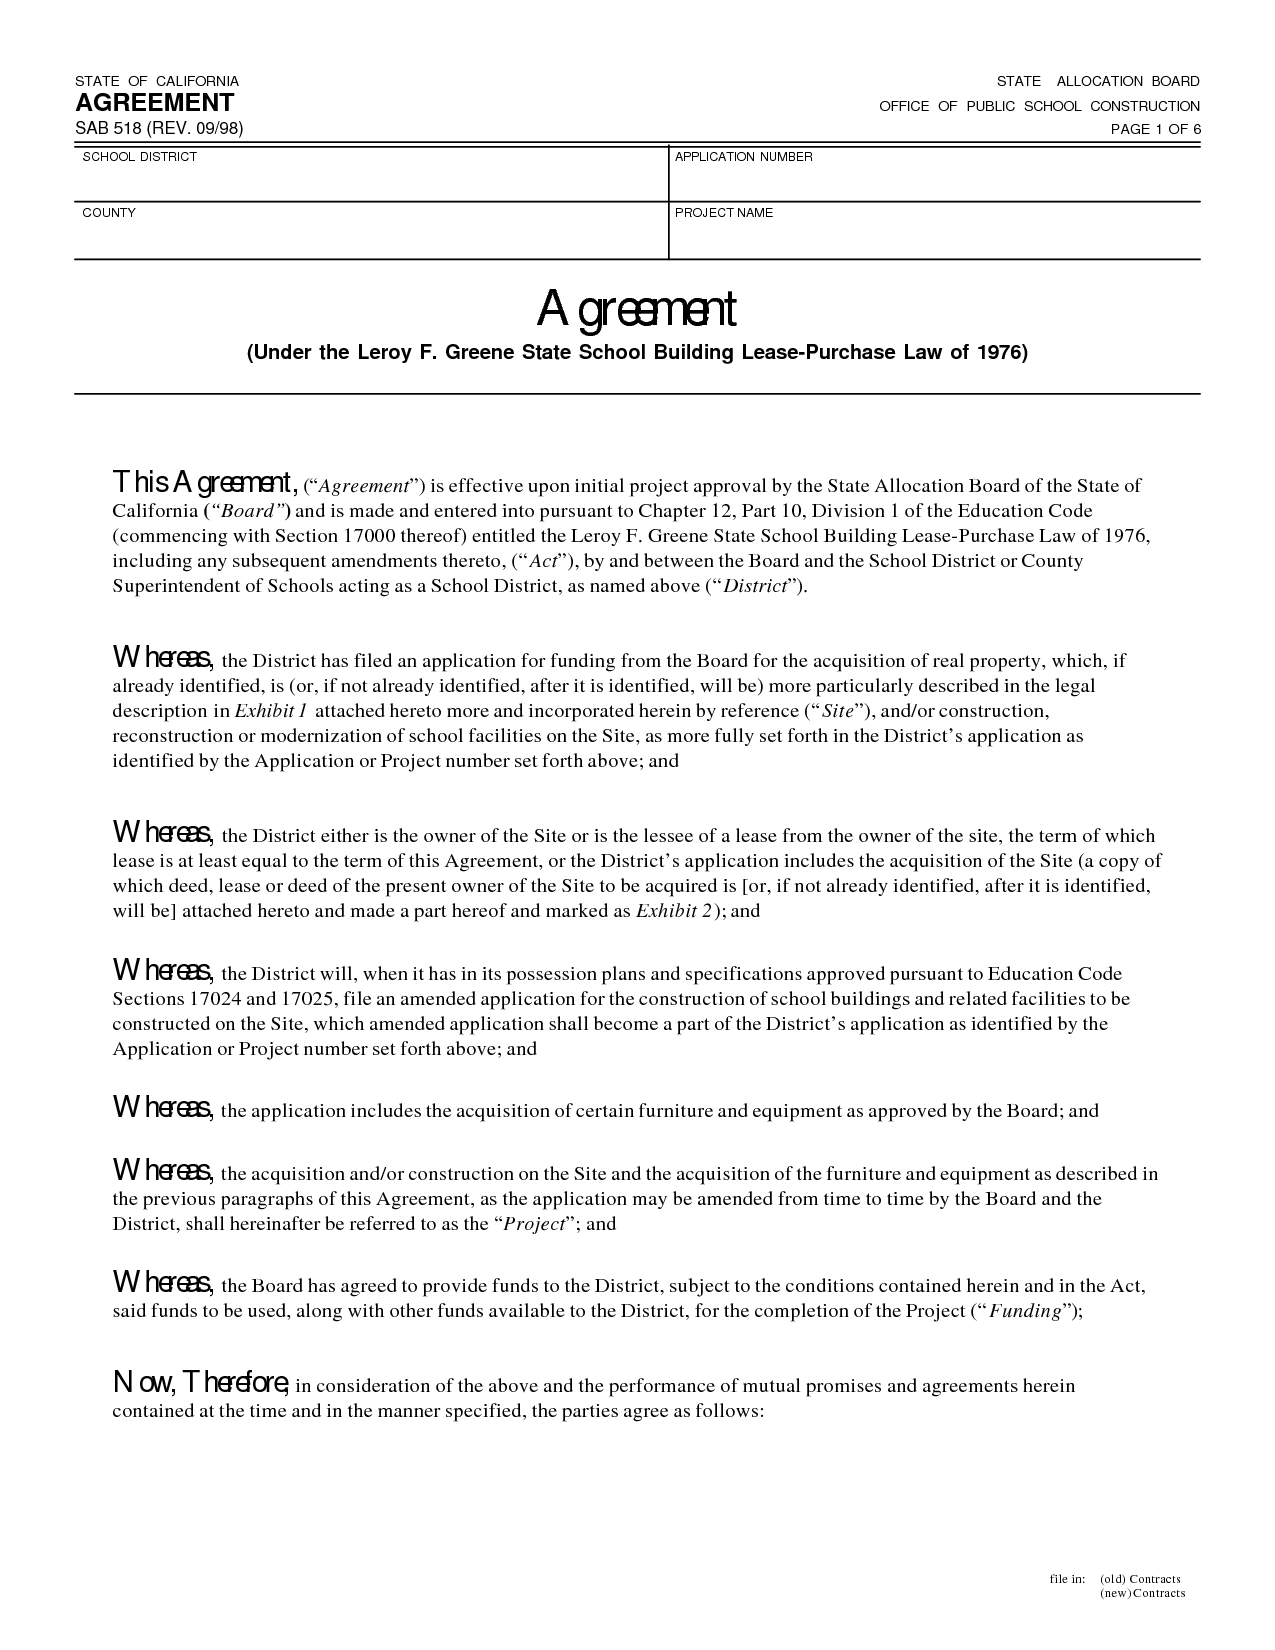 Agreement  Business Templates    Template And Business